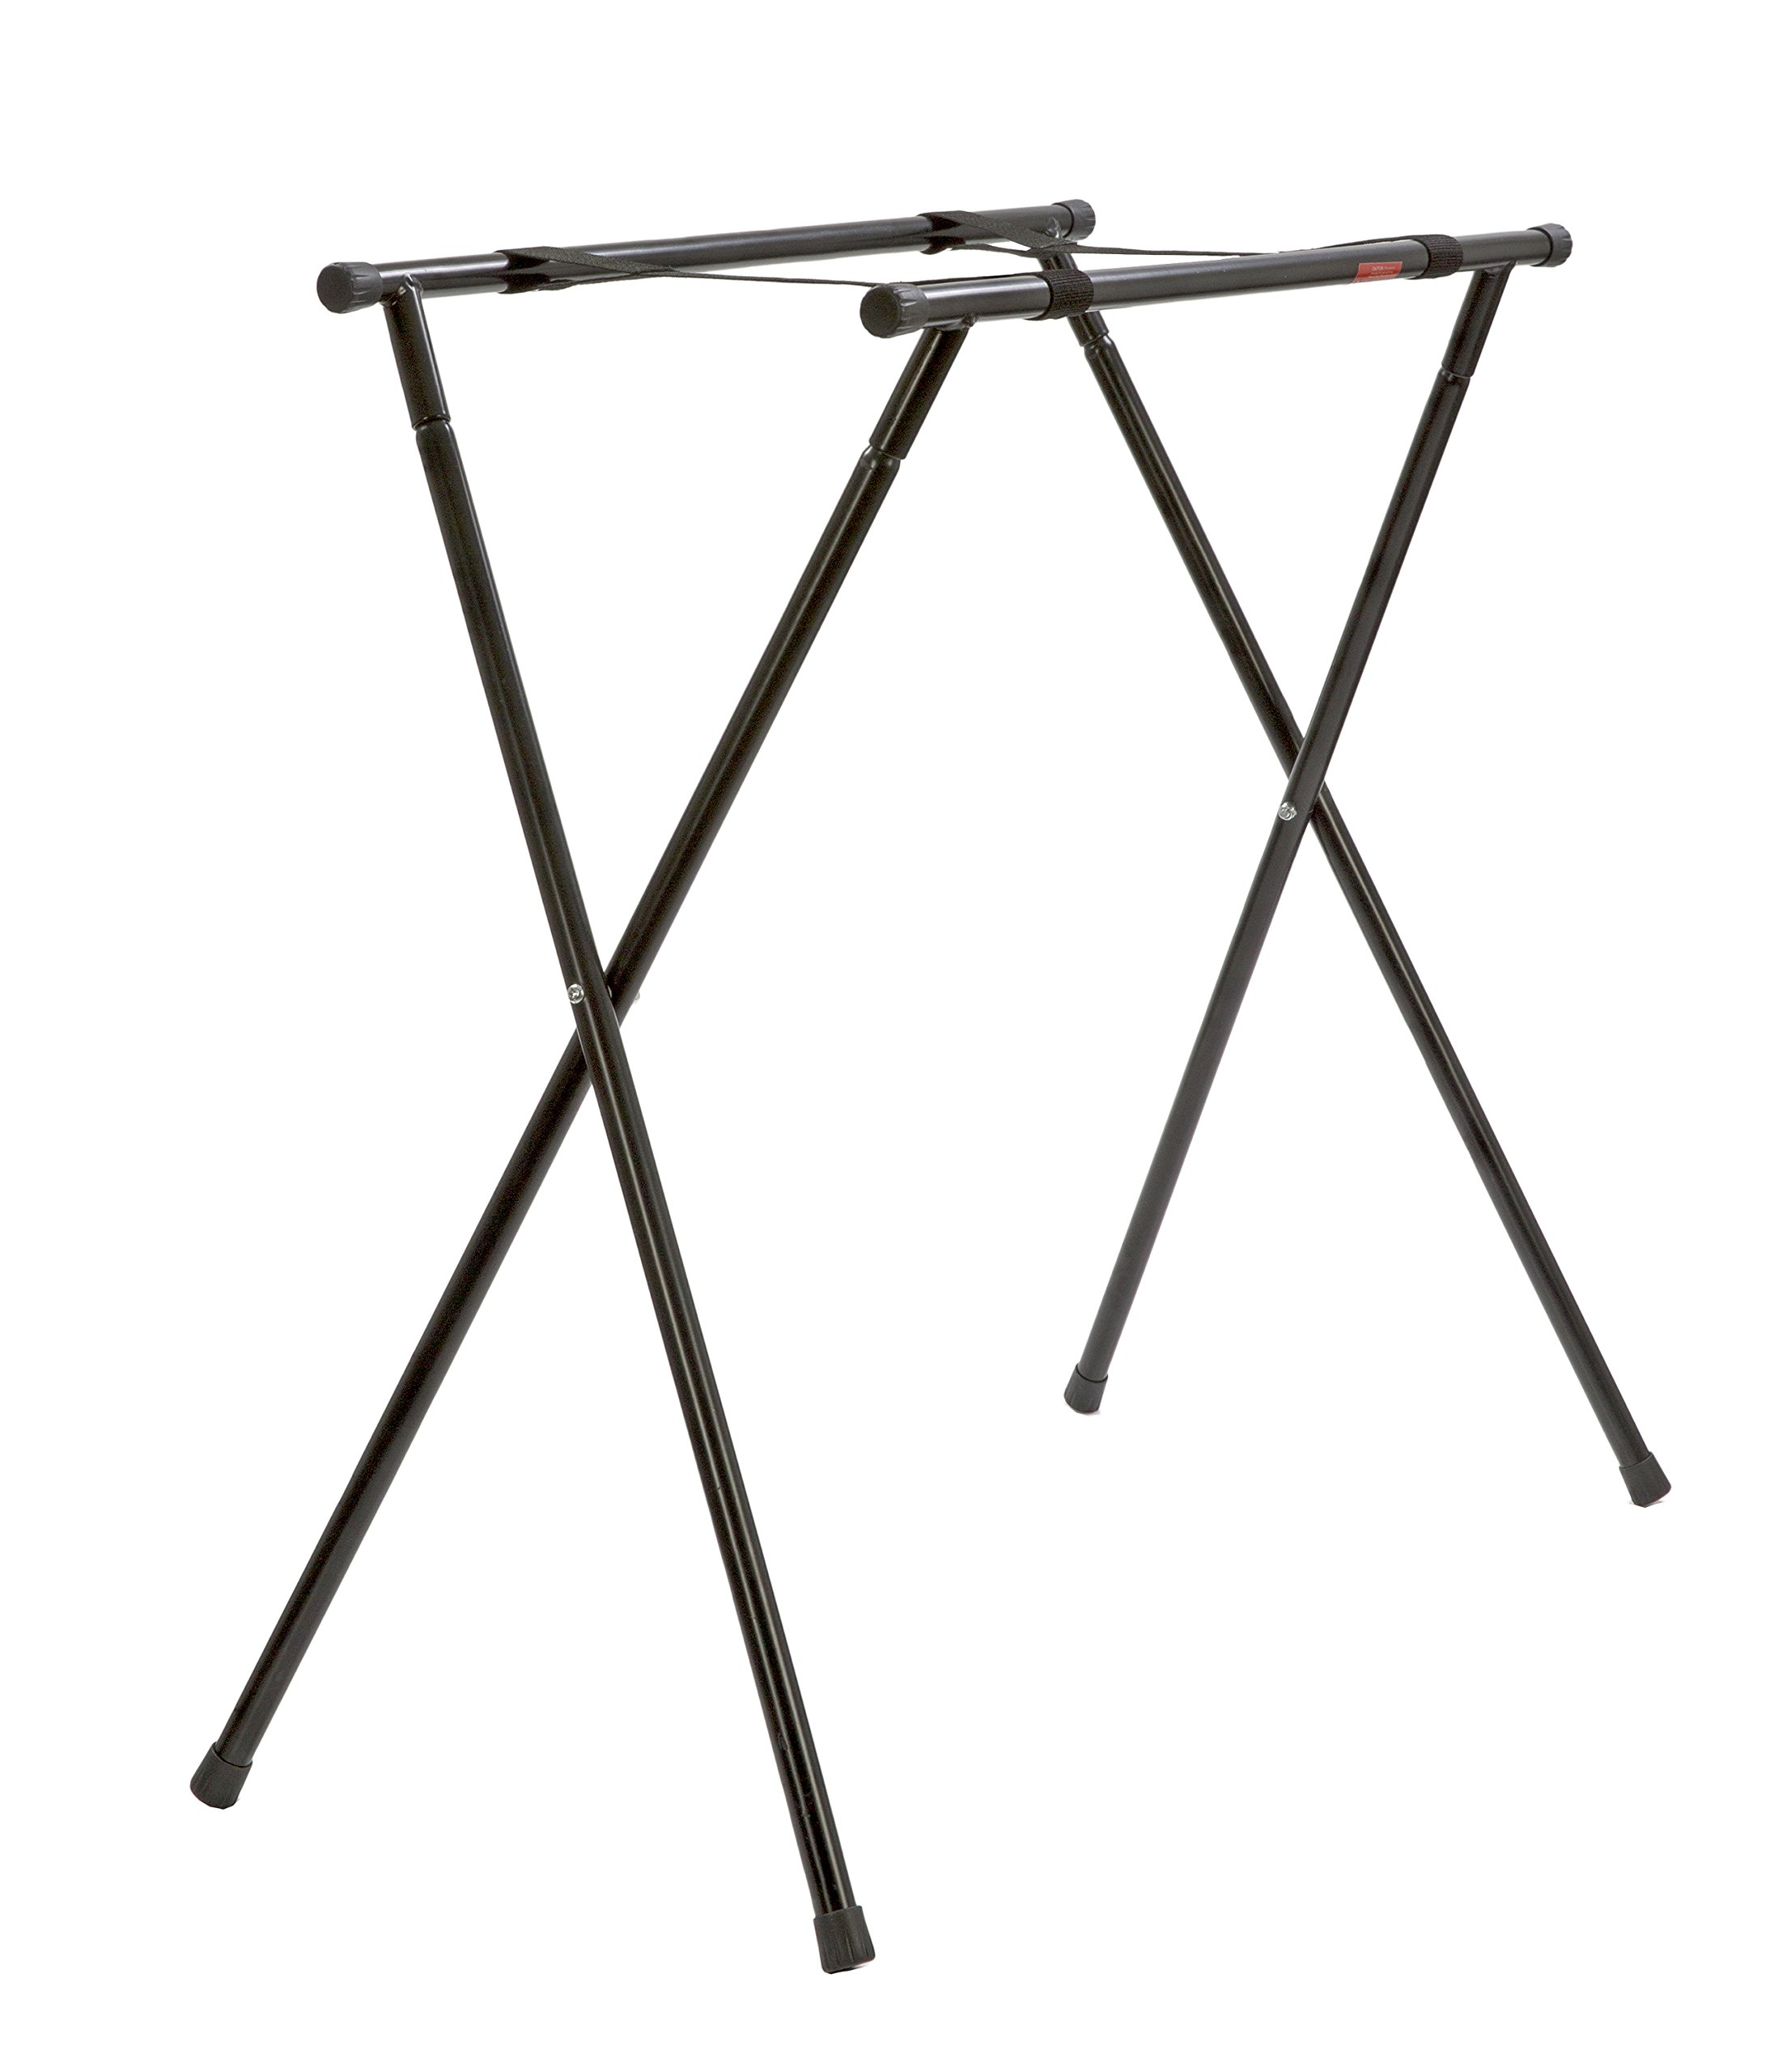 Peavey Escort Stand – Portable – Steel Construction – Useable With All Escort PA Systems – Matte Black Finish – Portable by Peavey